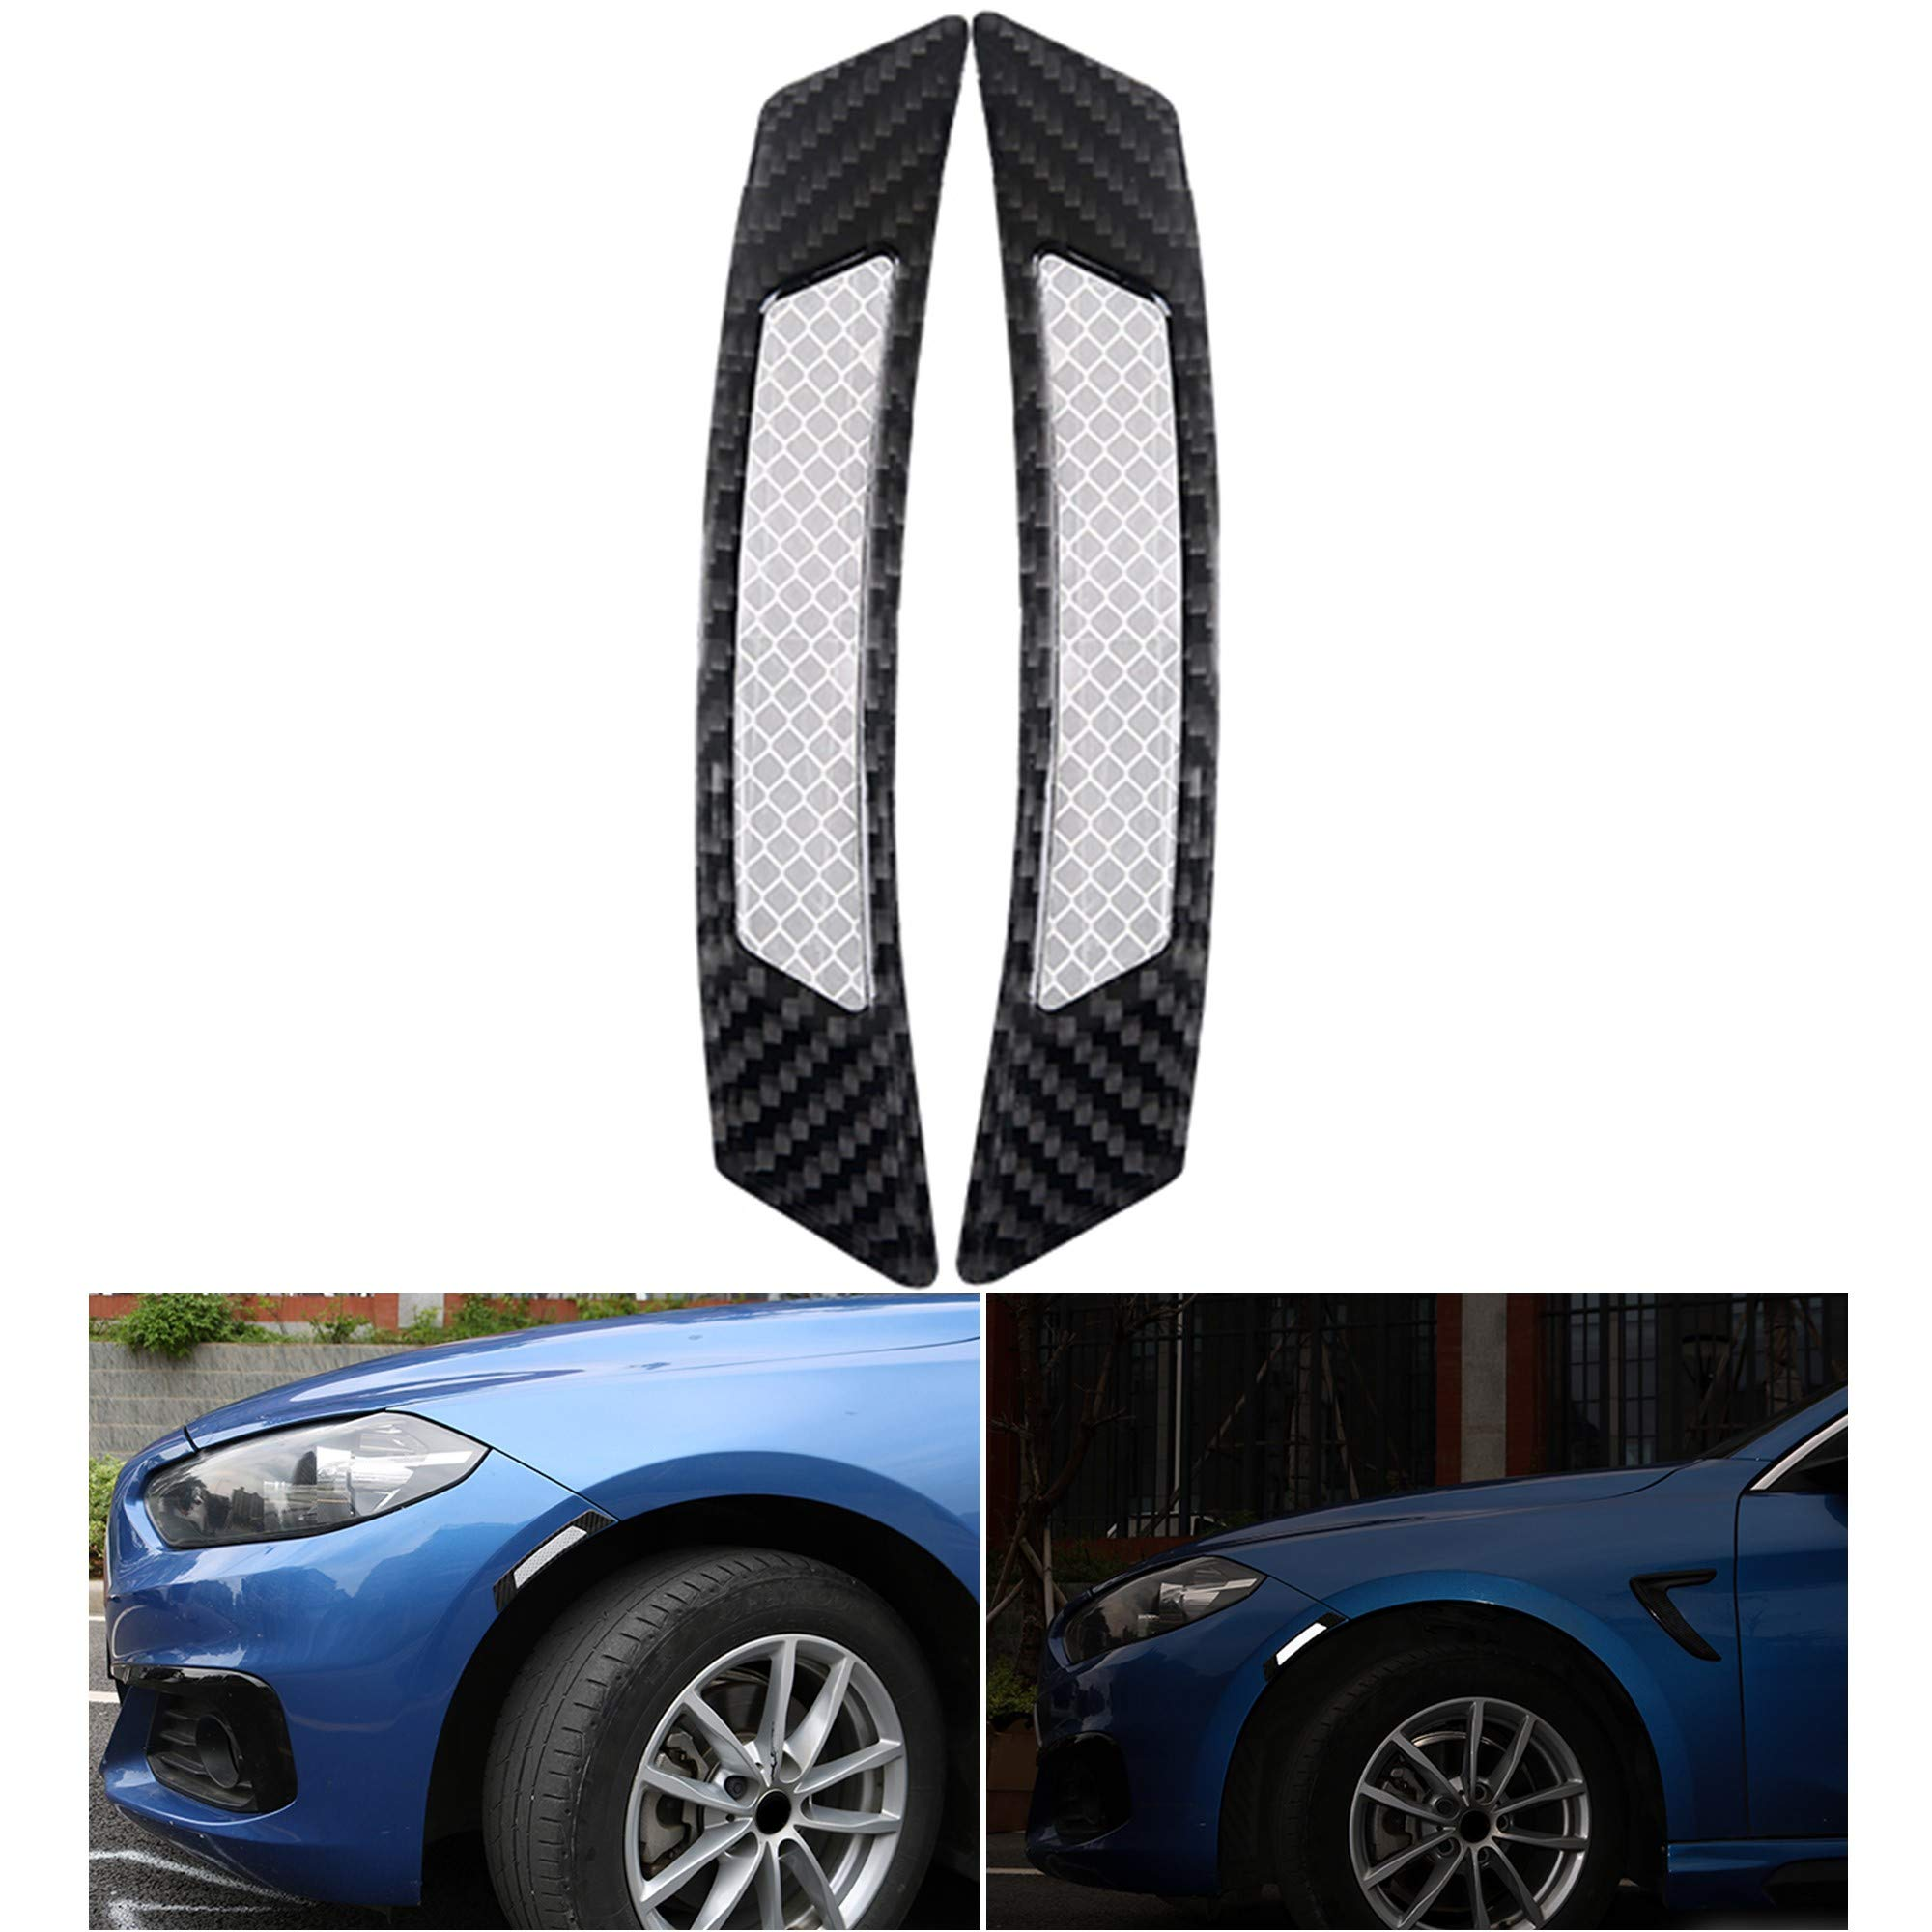 COSMOSS 3D Reflective Safety Reflector Side Wheel Sticker Gray